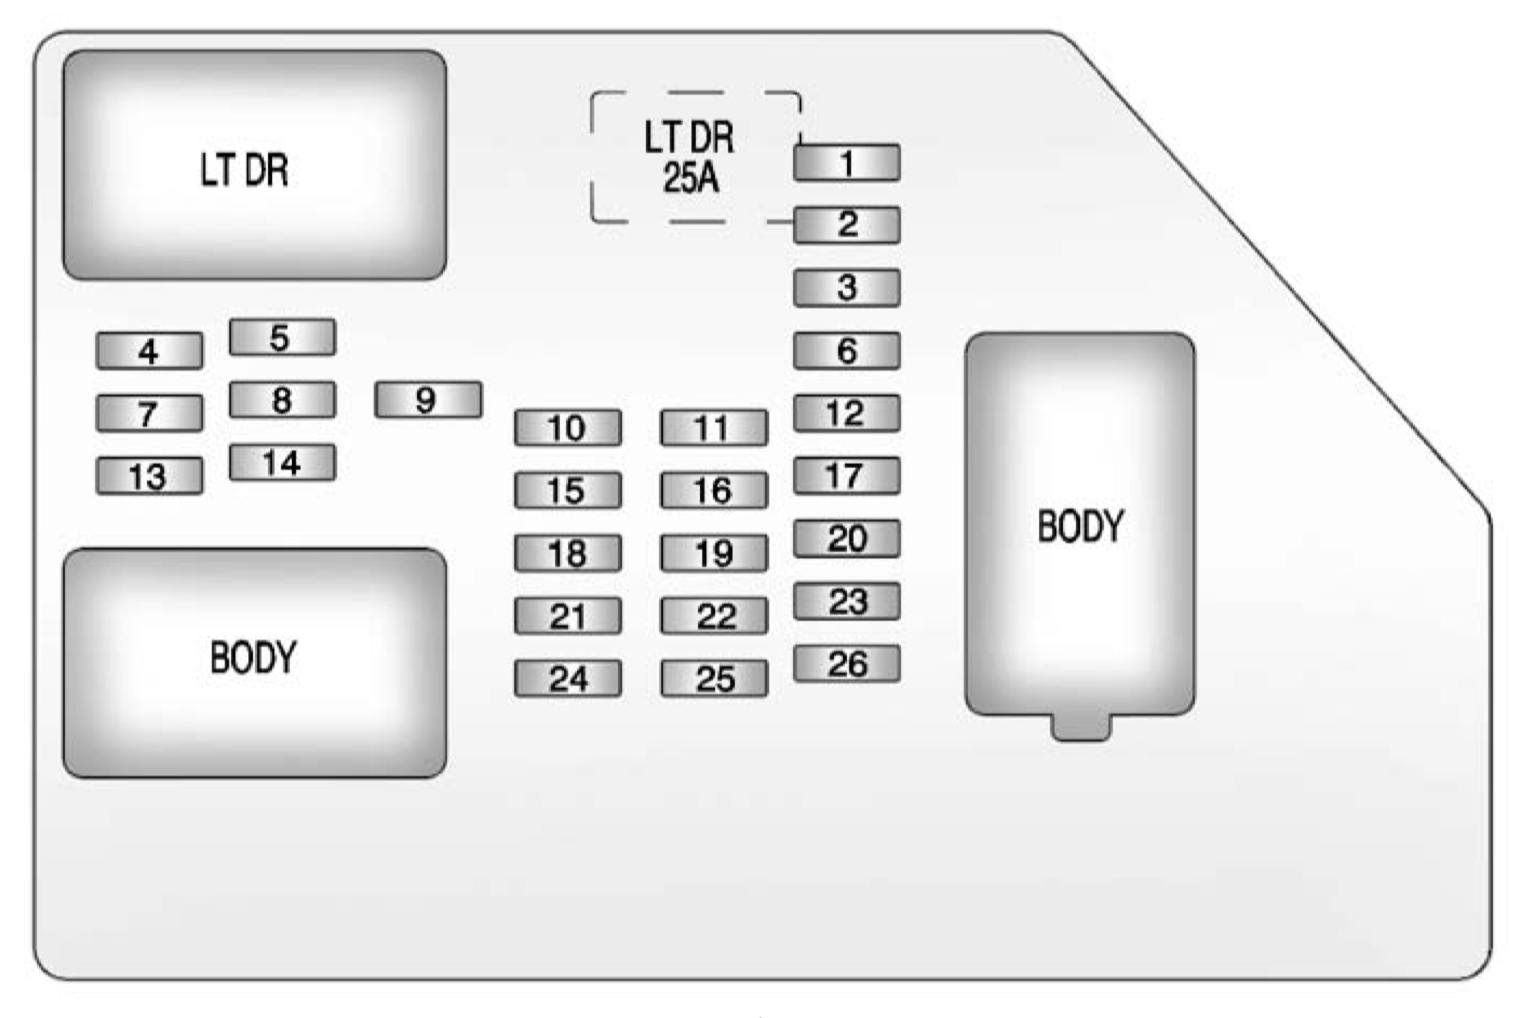 chevrolet tahoe (2012 - 2014) - fuse box diagram - auto genius 2012 chevrolet tahoe fuse box layout #1